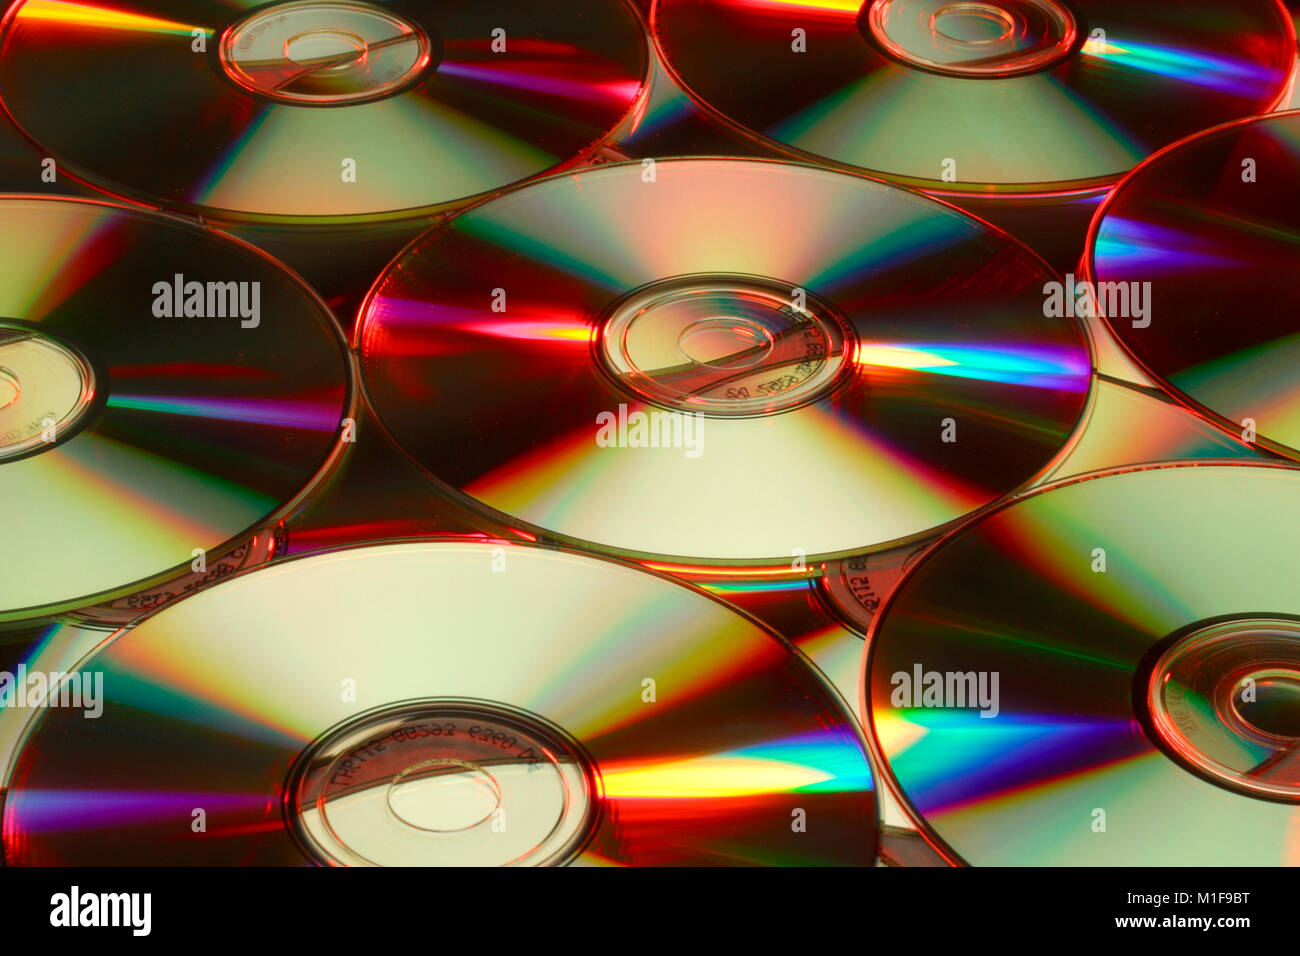 Colourful refraction effects on DVDs Stock Photo